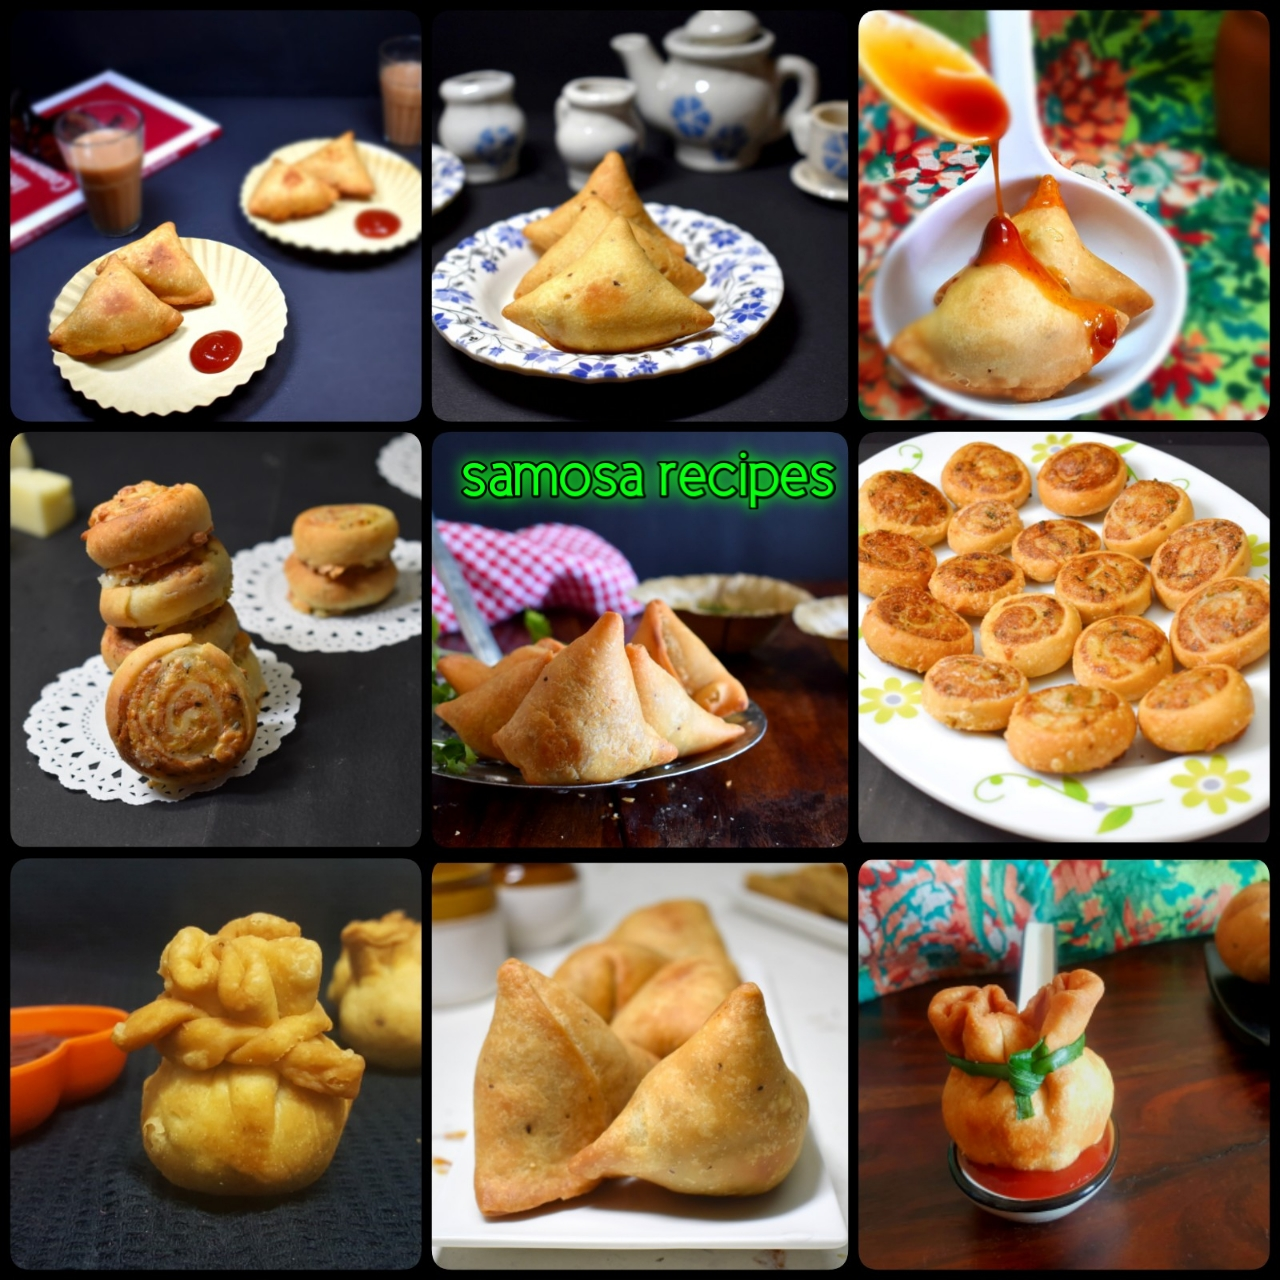 samosa recipes